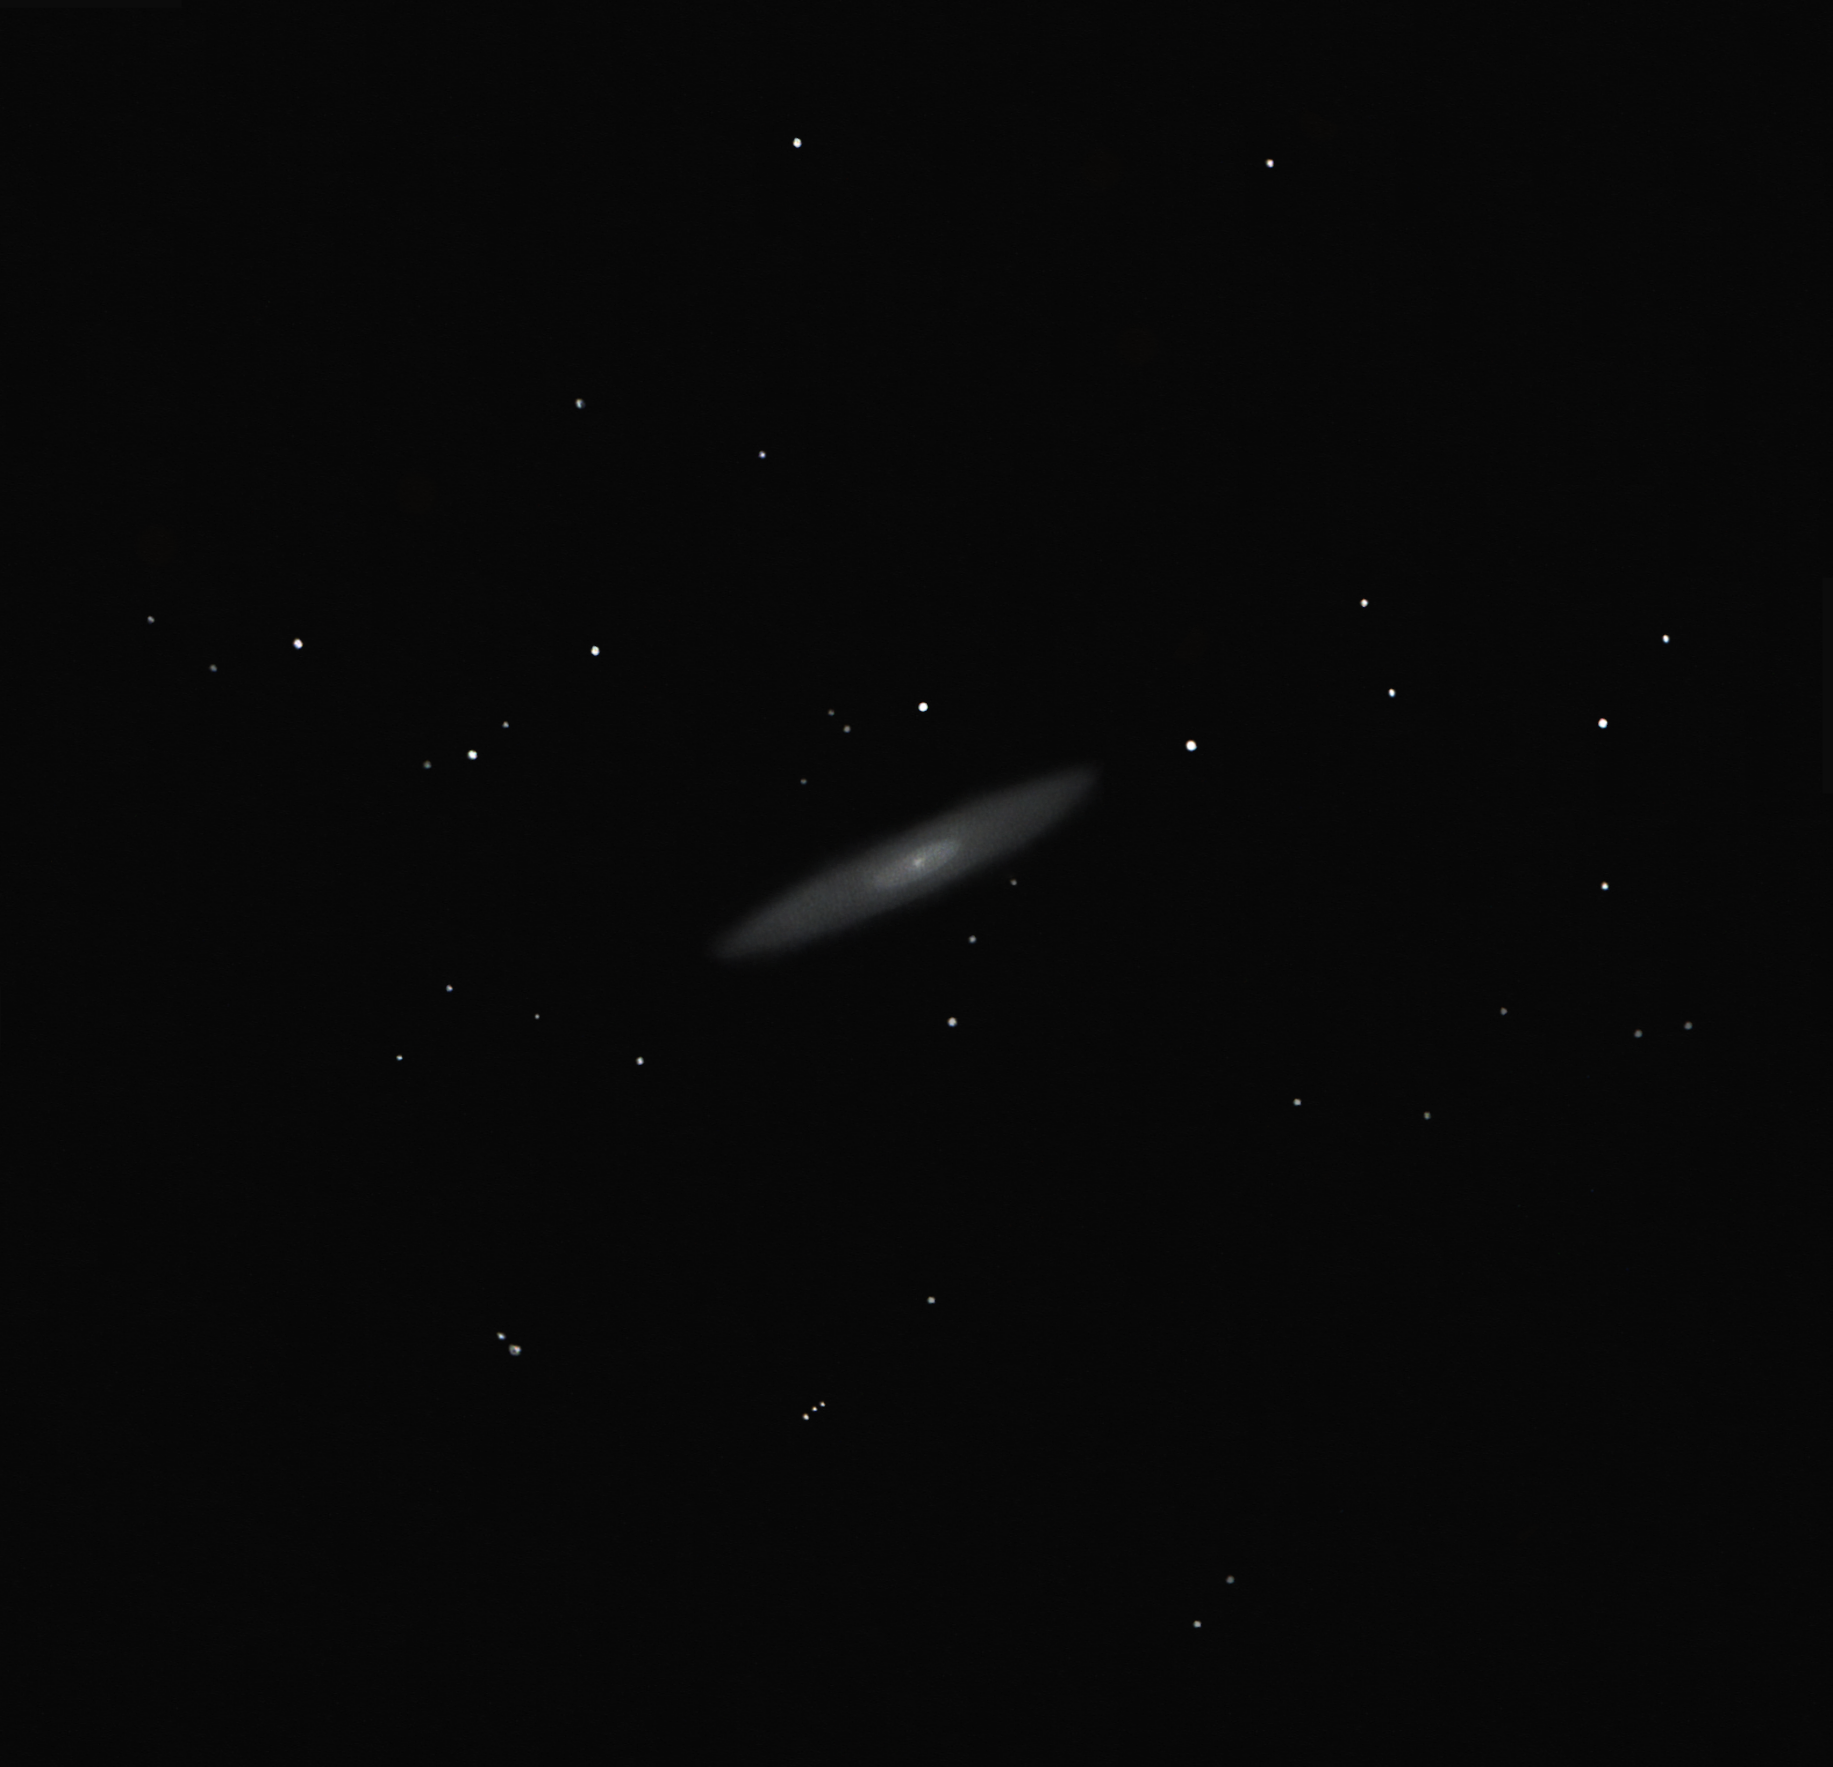 ngc2613-T355-md3.png